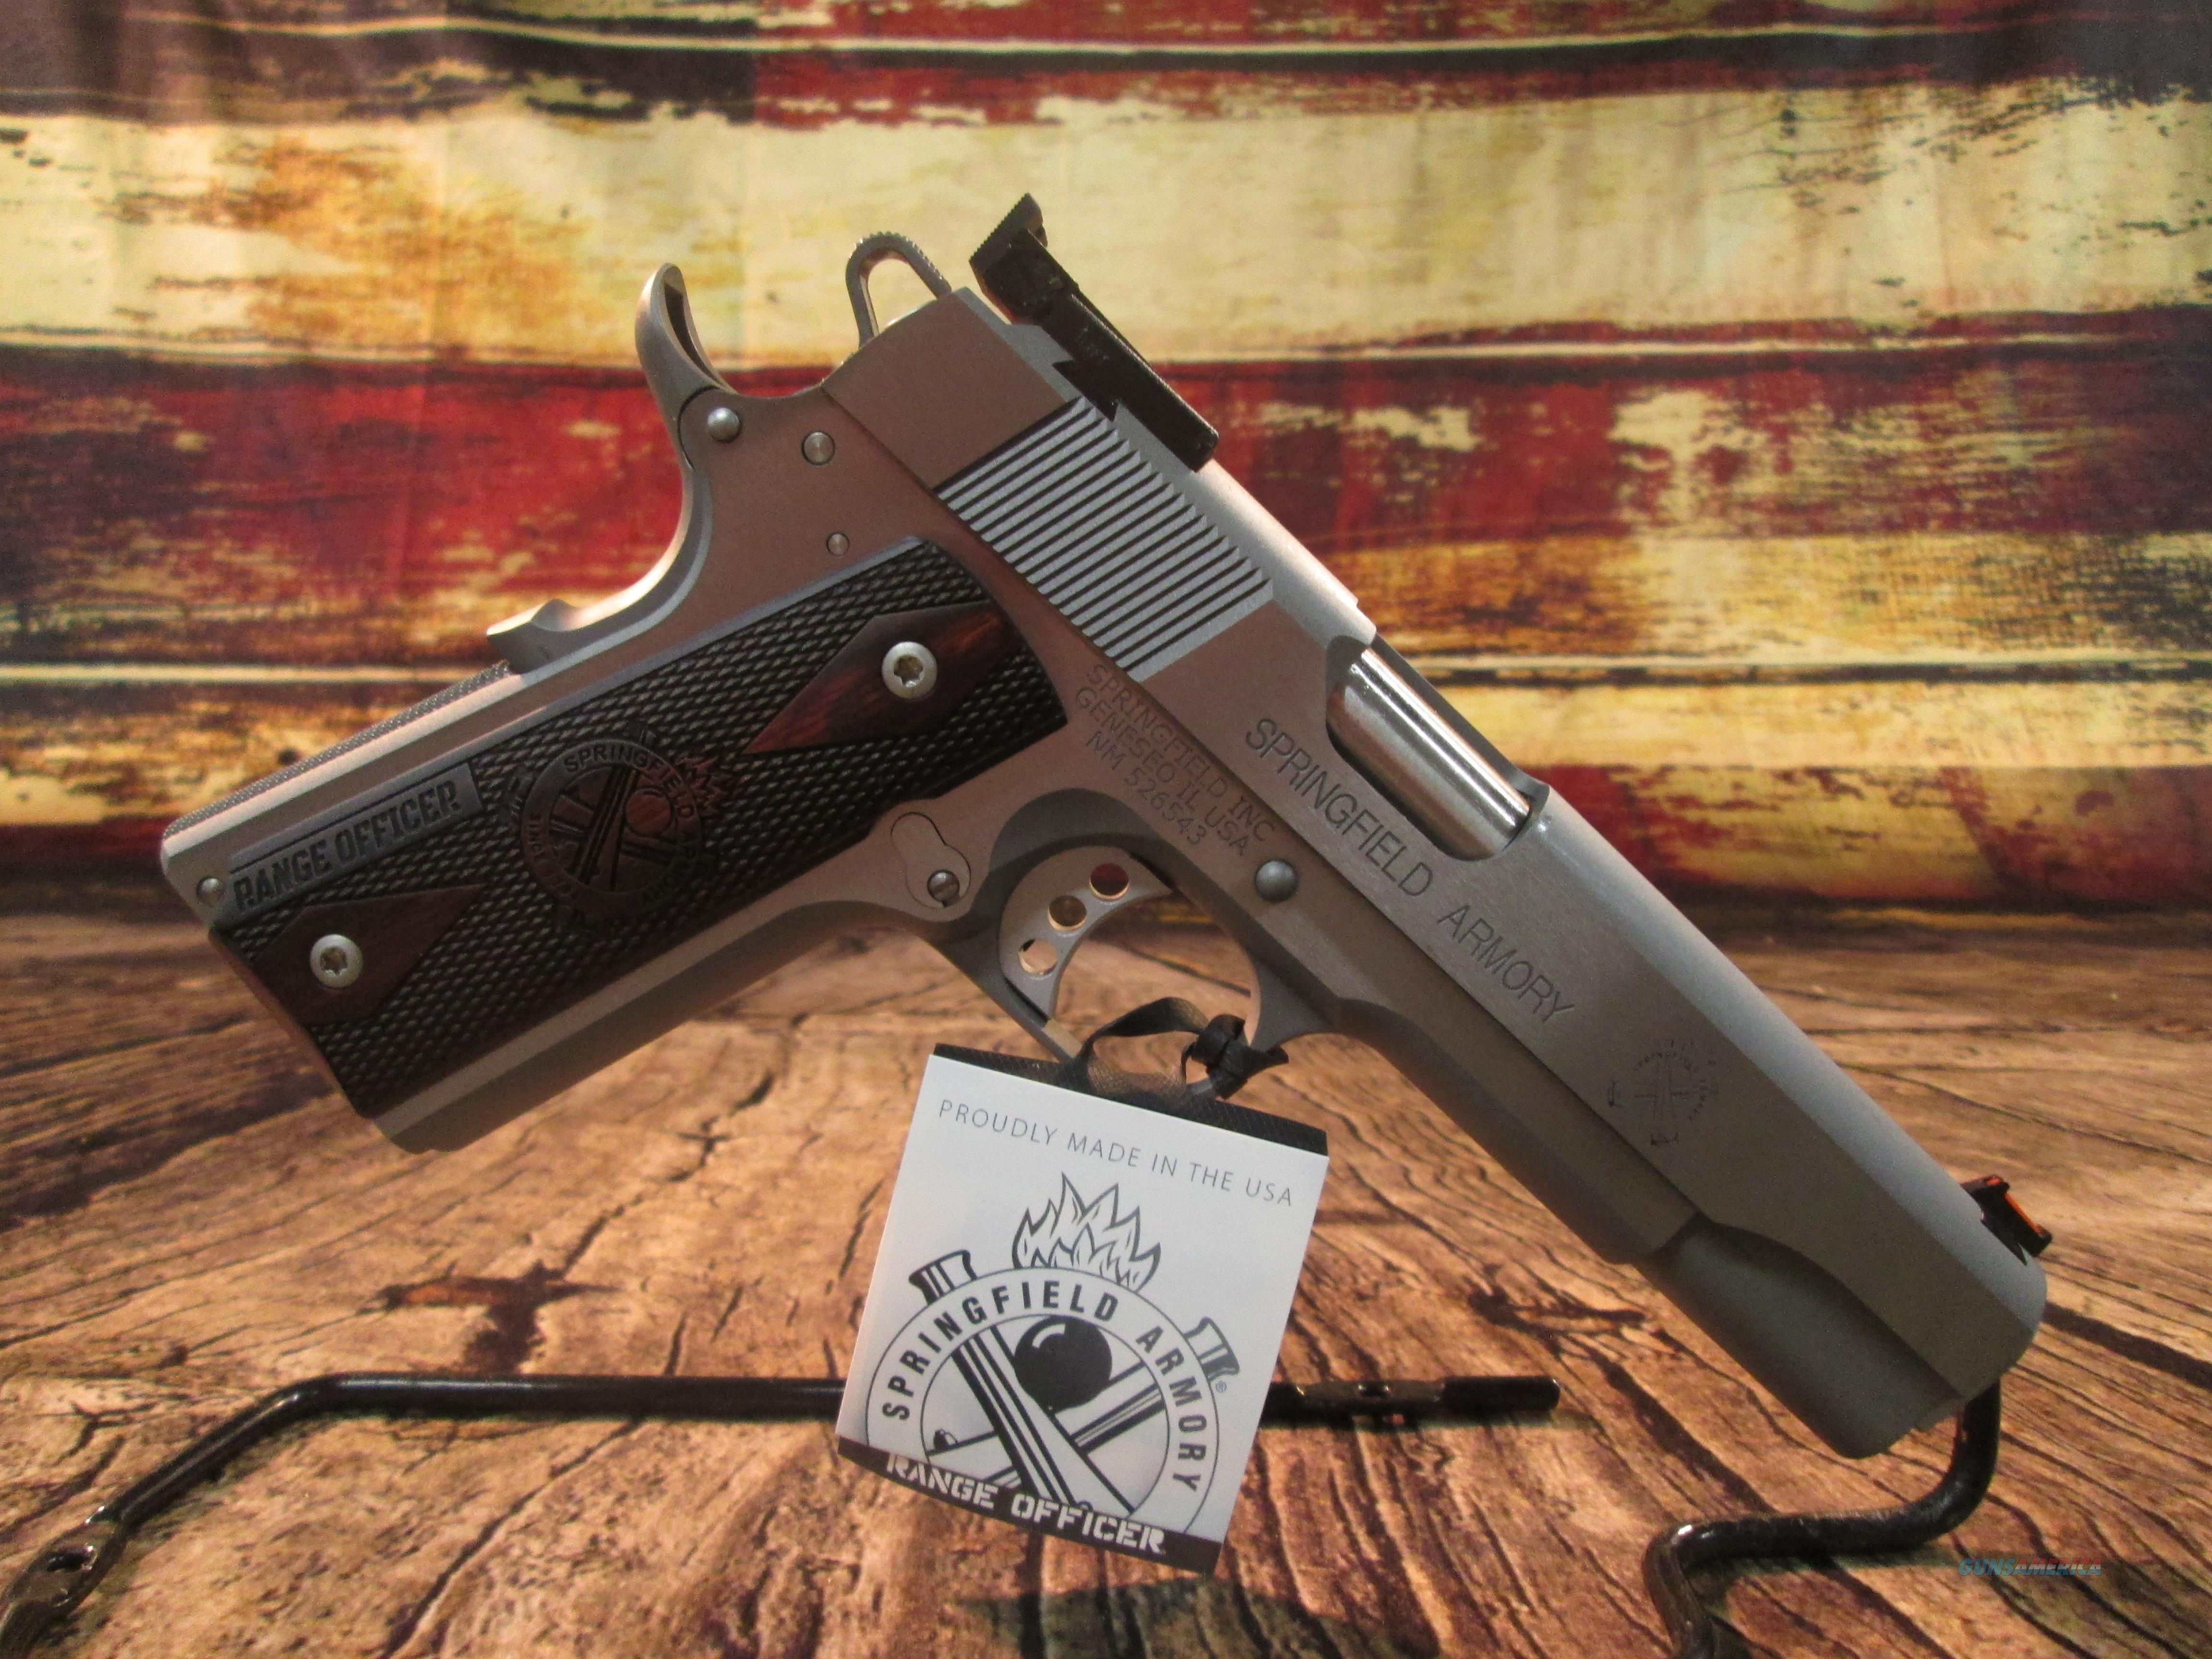 SPRINGFIELD ARMORY SS RANGE OFFICER 9MM W/ TARGET SIGHTS NEW (PI9122L)  Guns > Pistols > Springfield Armory Pistols > 1911 Type